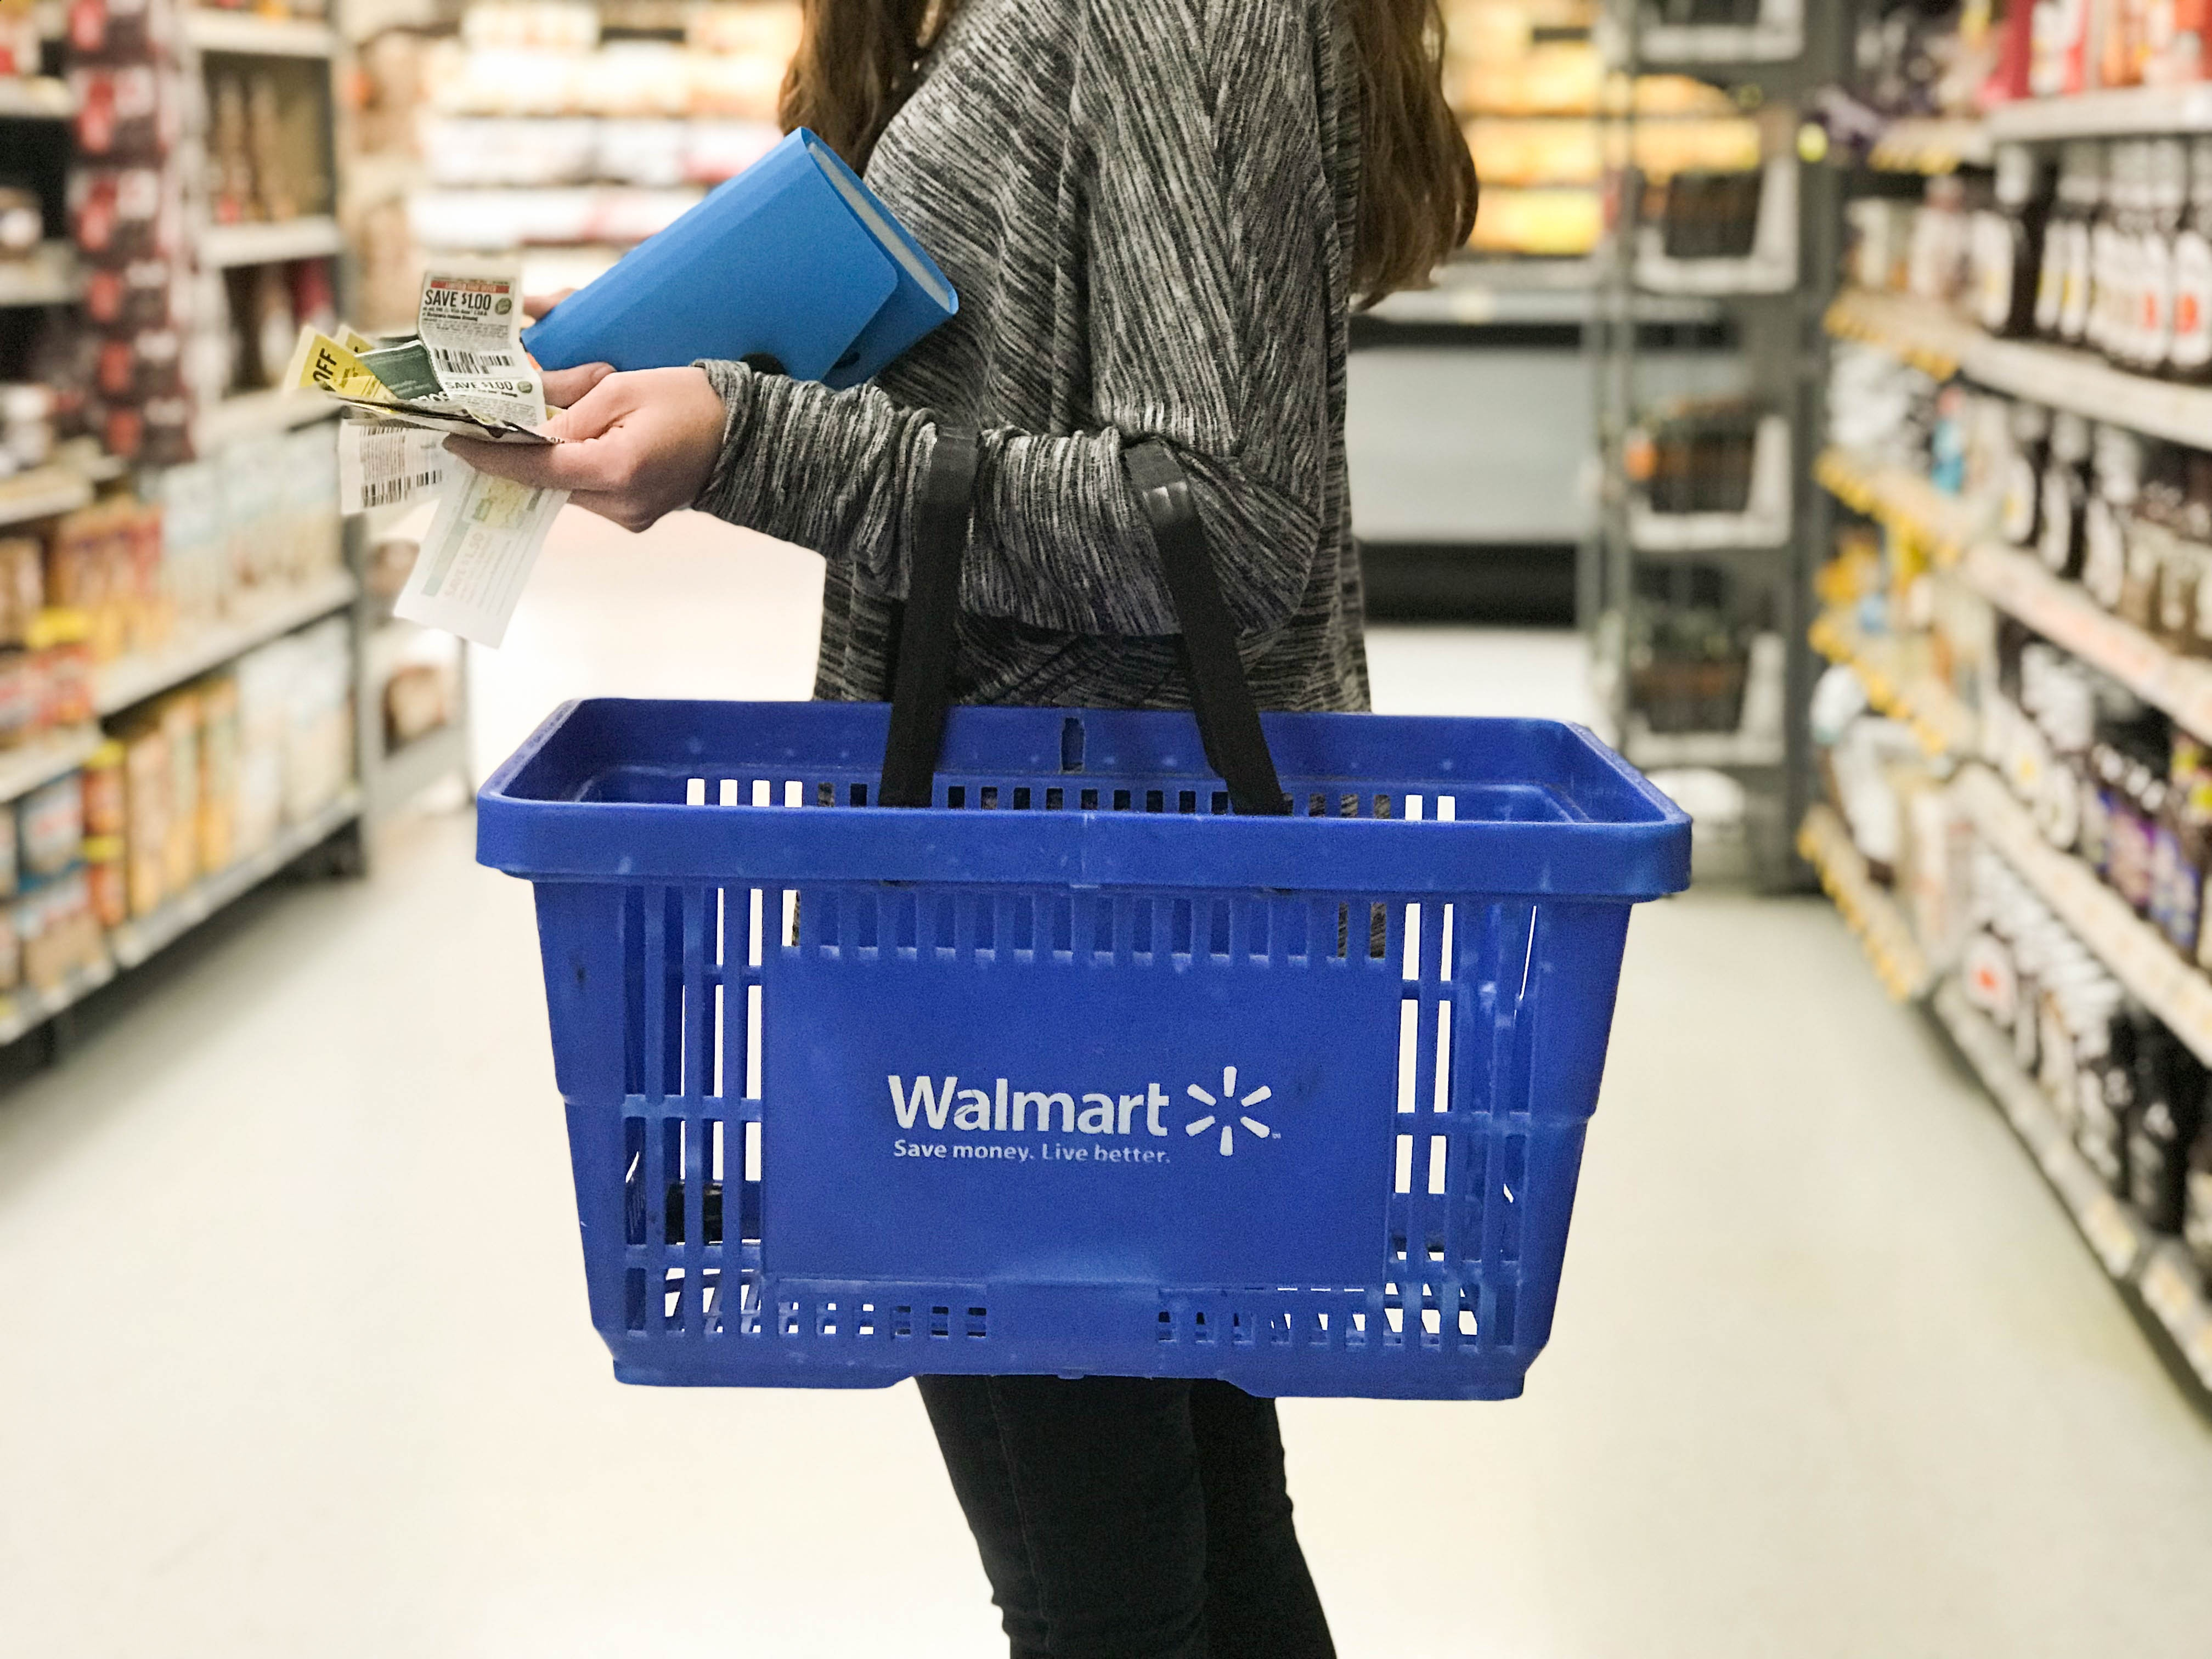 12 Walmart Couponing Hacks You Need To Know - The Krazy Coupon Lady - Free Printable Coupons For Walmart